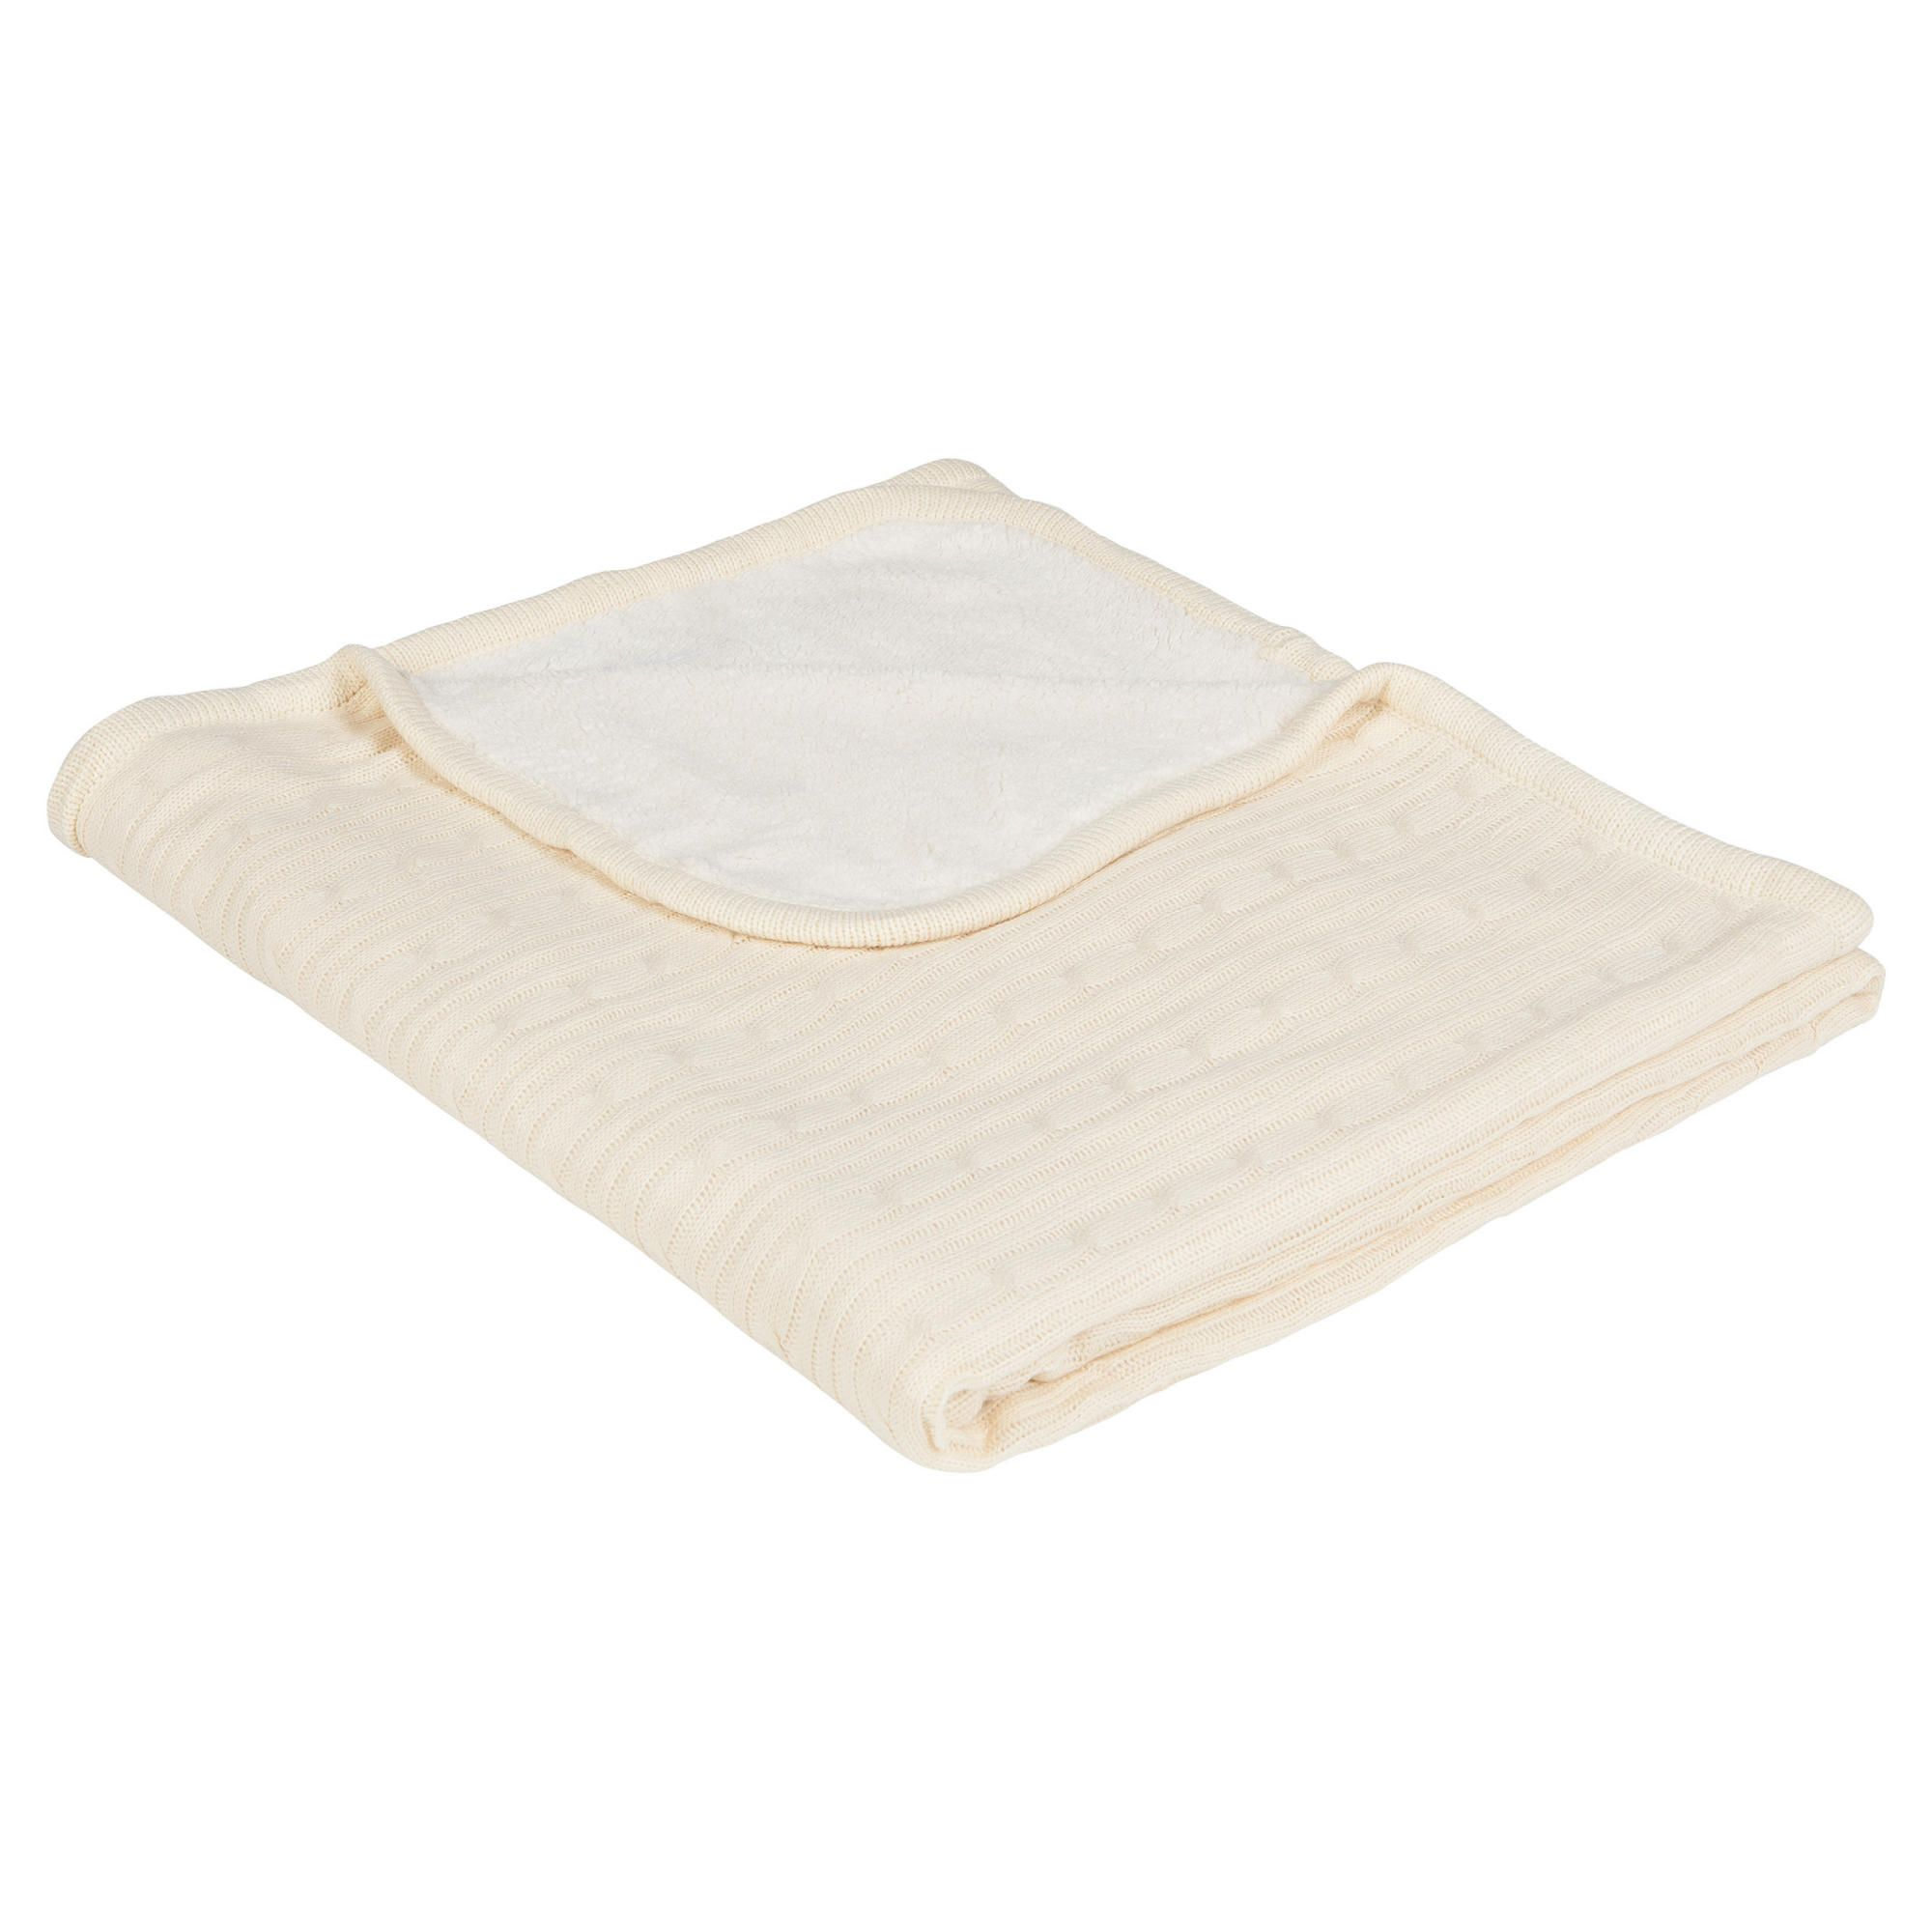 Reversible Knit/Fleecy throw Cream